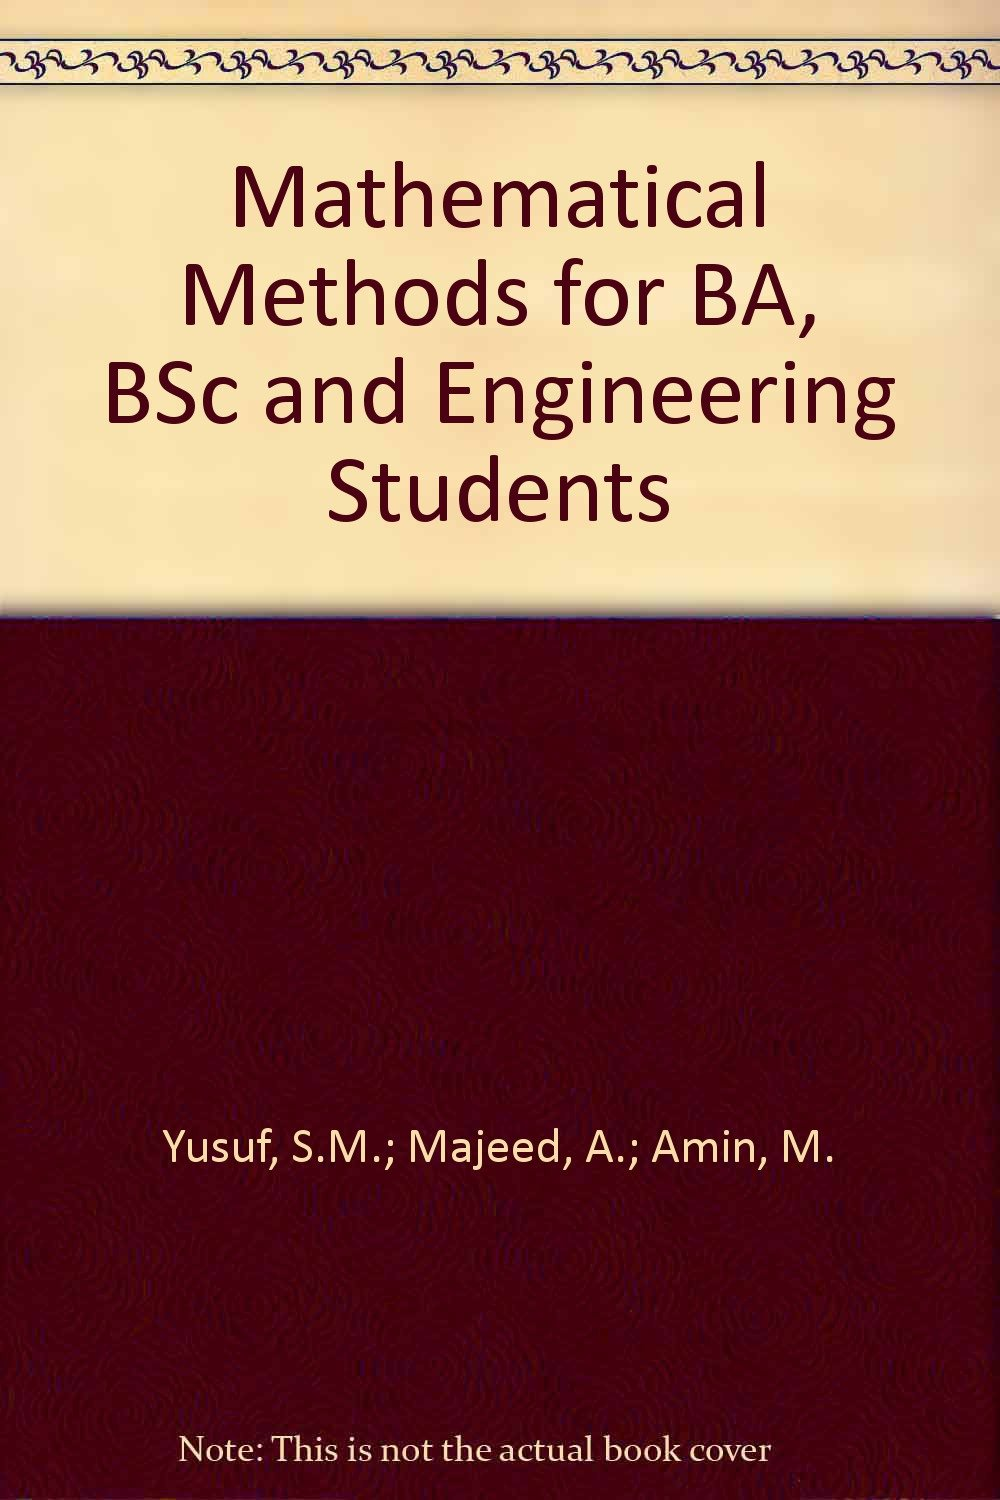 bsc mathematical methods notes